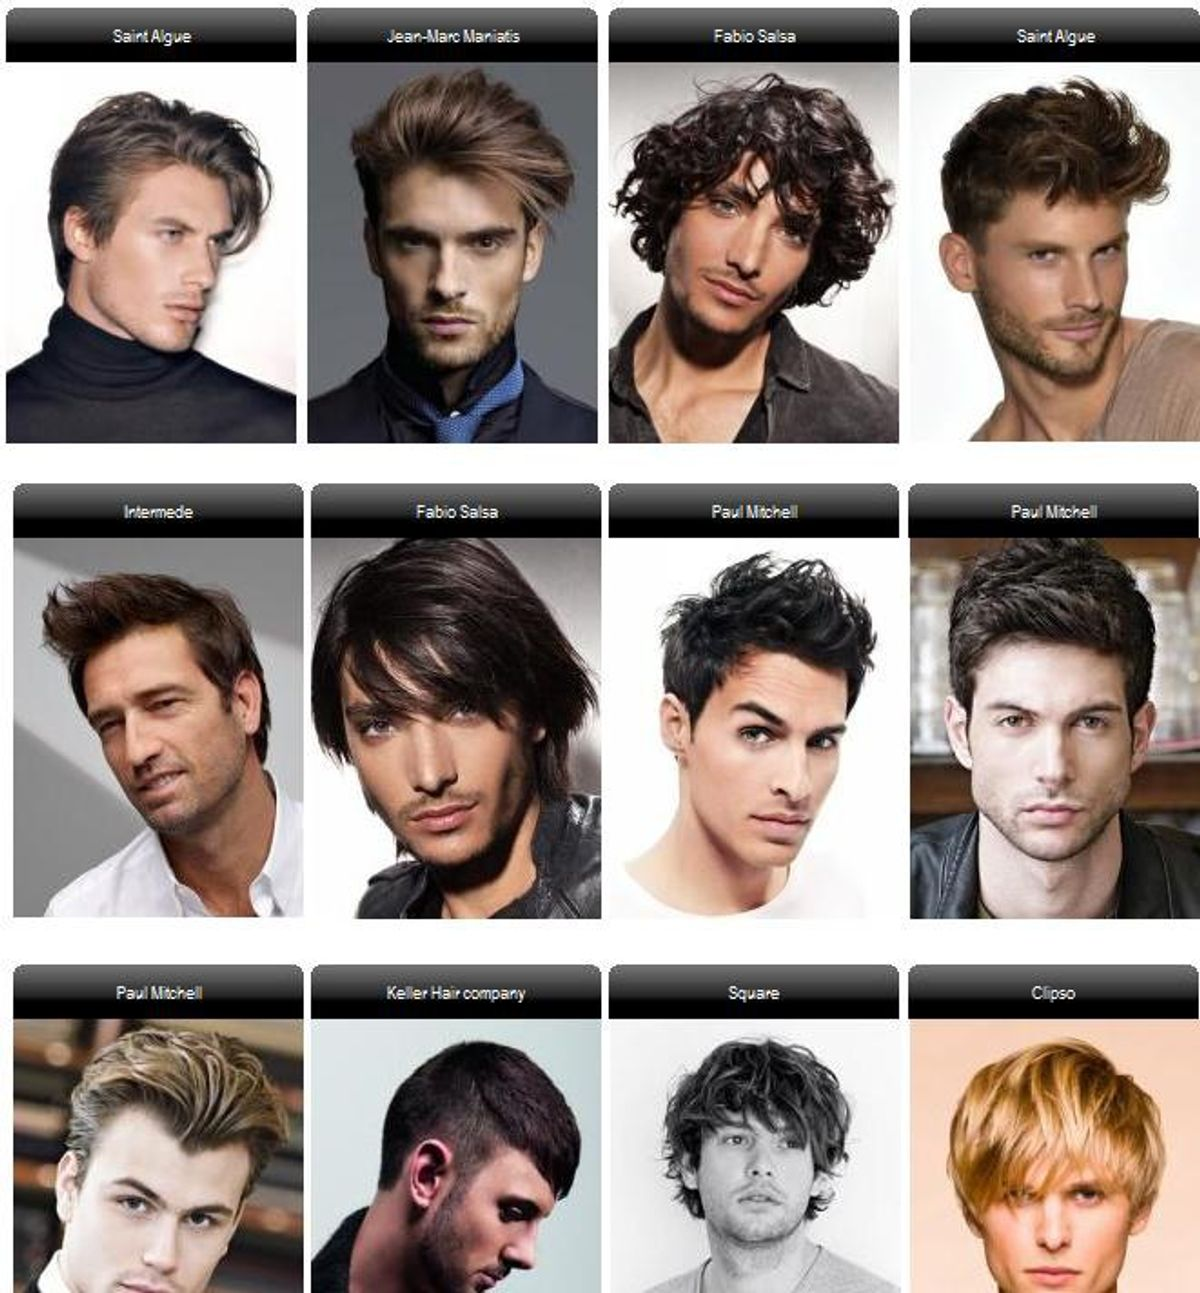 12 Different Hairstyles Of A 20 Year Old Male